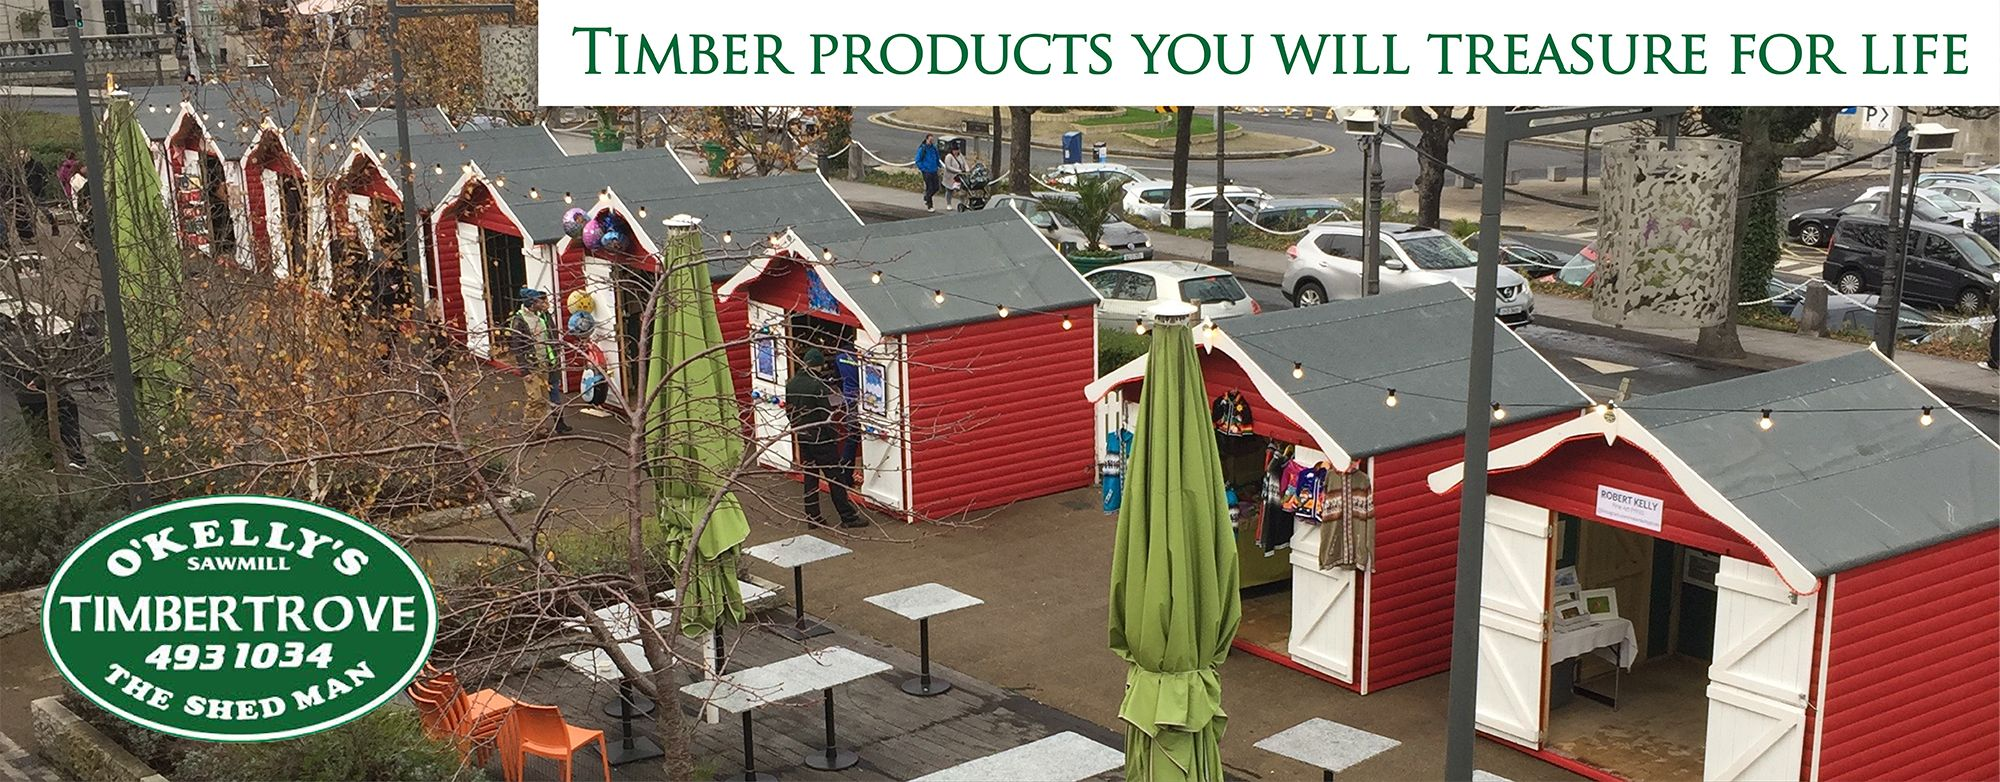 Wooden Sheds And Garden Fencing - Timber Garden Products You Will Treasure